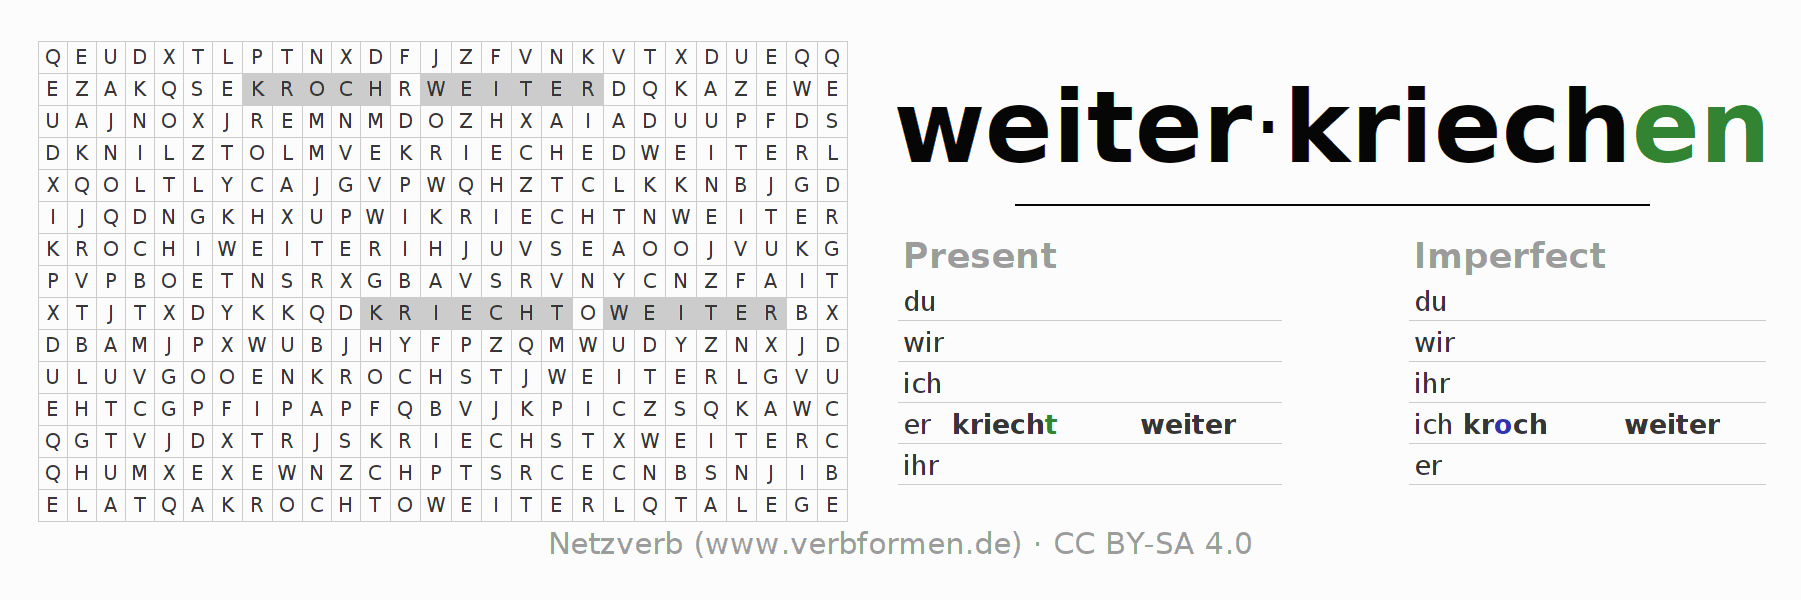 Word search puzzle for the conjugation of the verb weiterkriechen